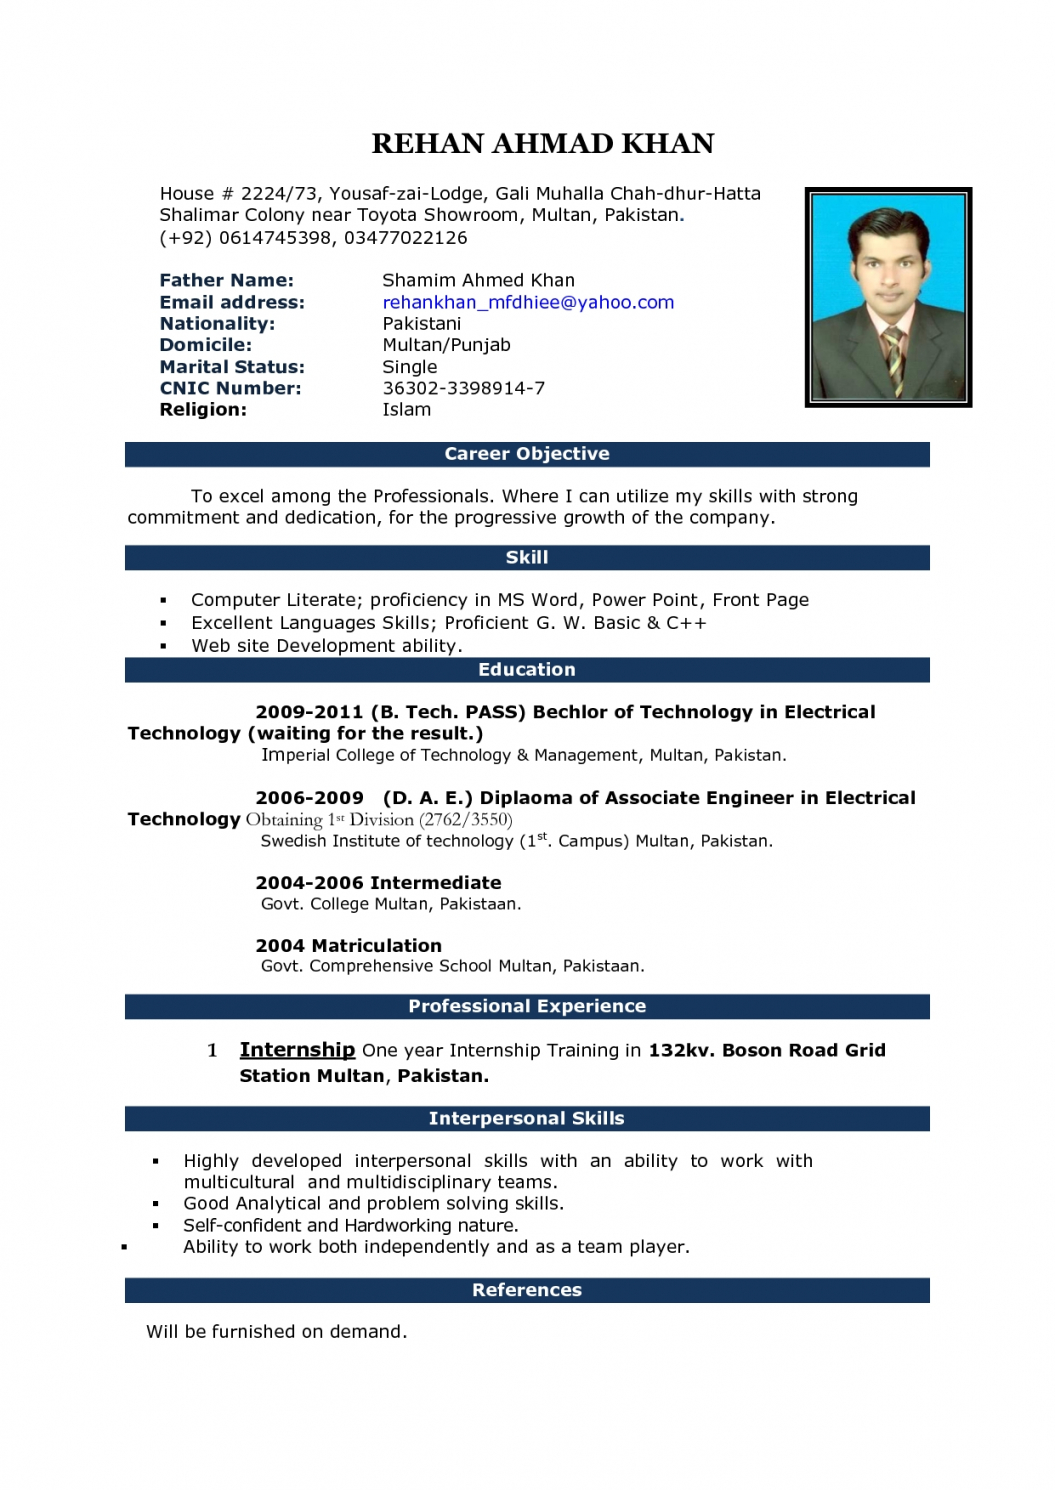 Teacher Resume Template Microsoft Word Free Awesome Teacher Resume With Free Teaching Resume Templates Microsoft Word